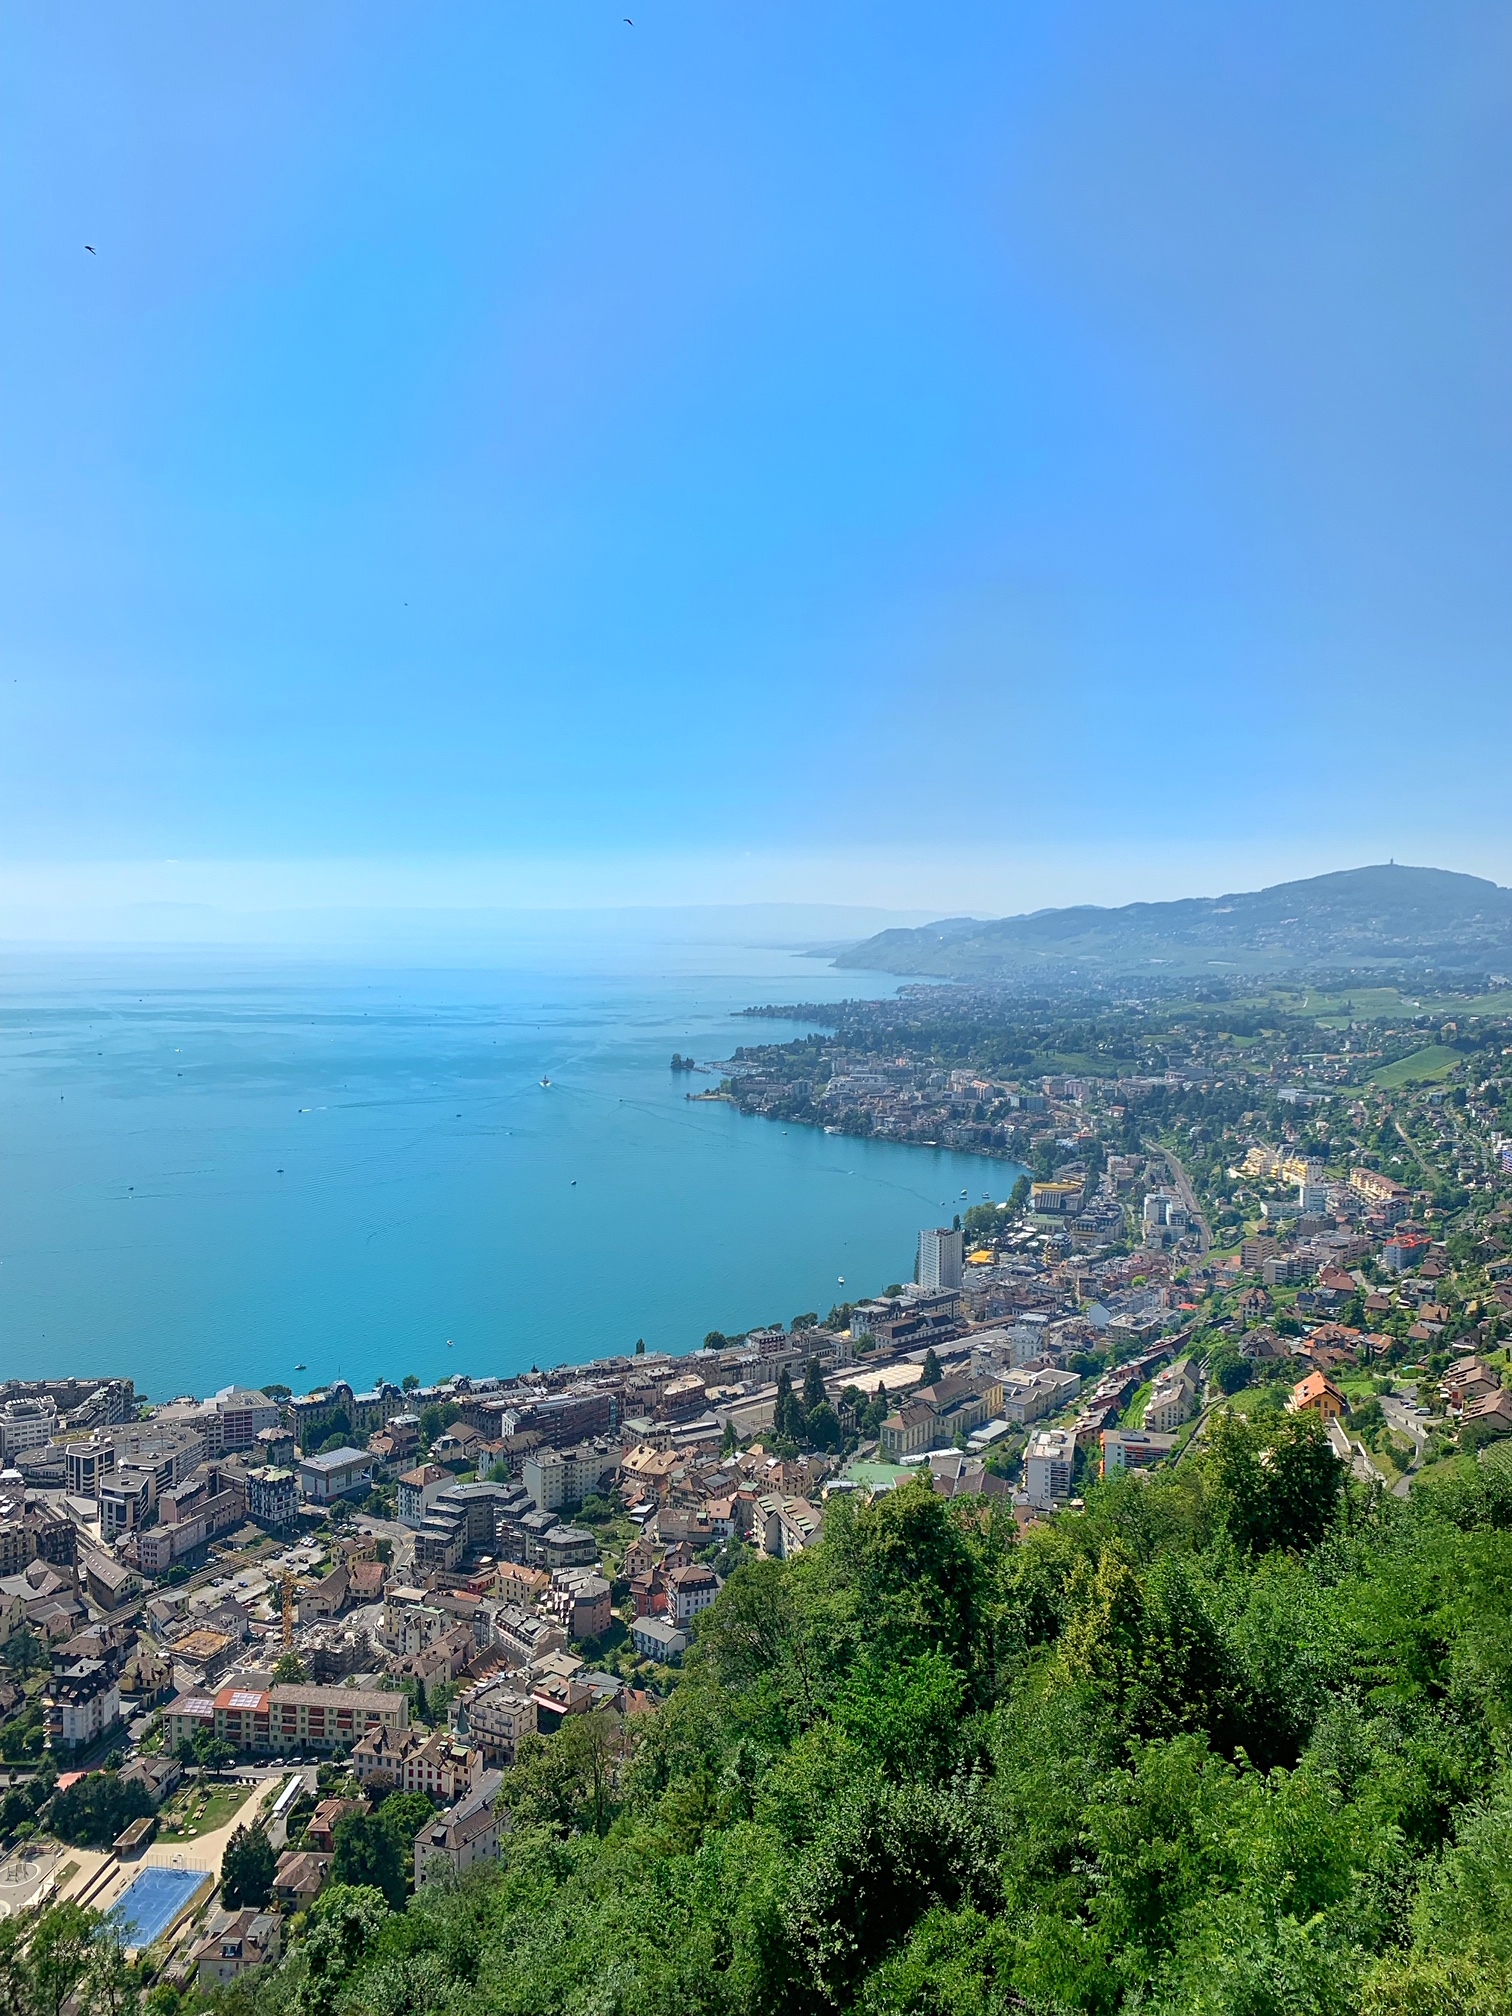 montreux switzerland, the-alyst.com